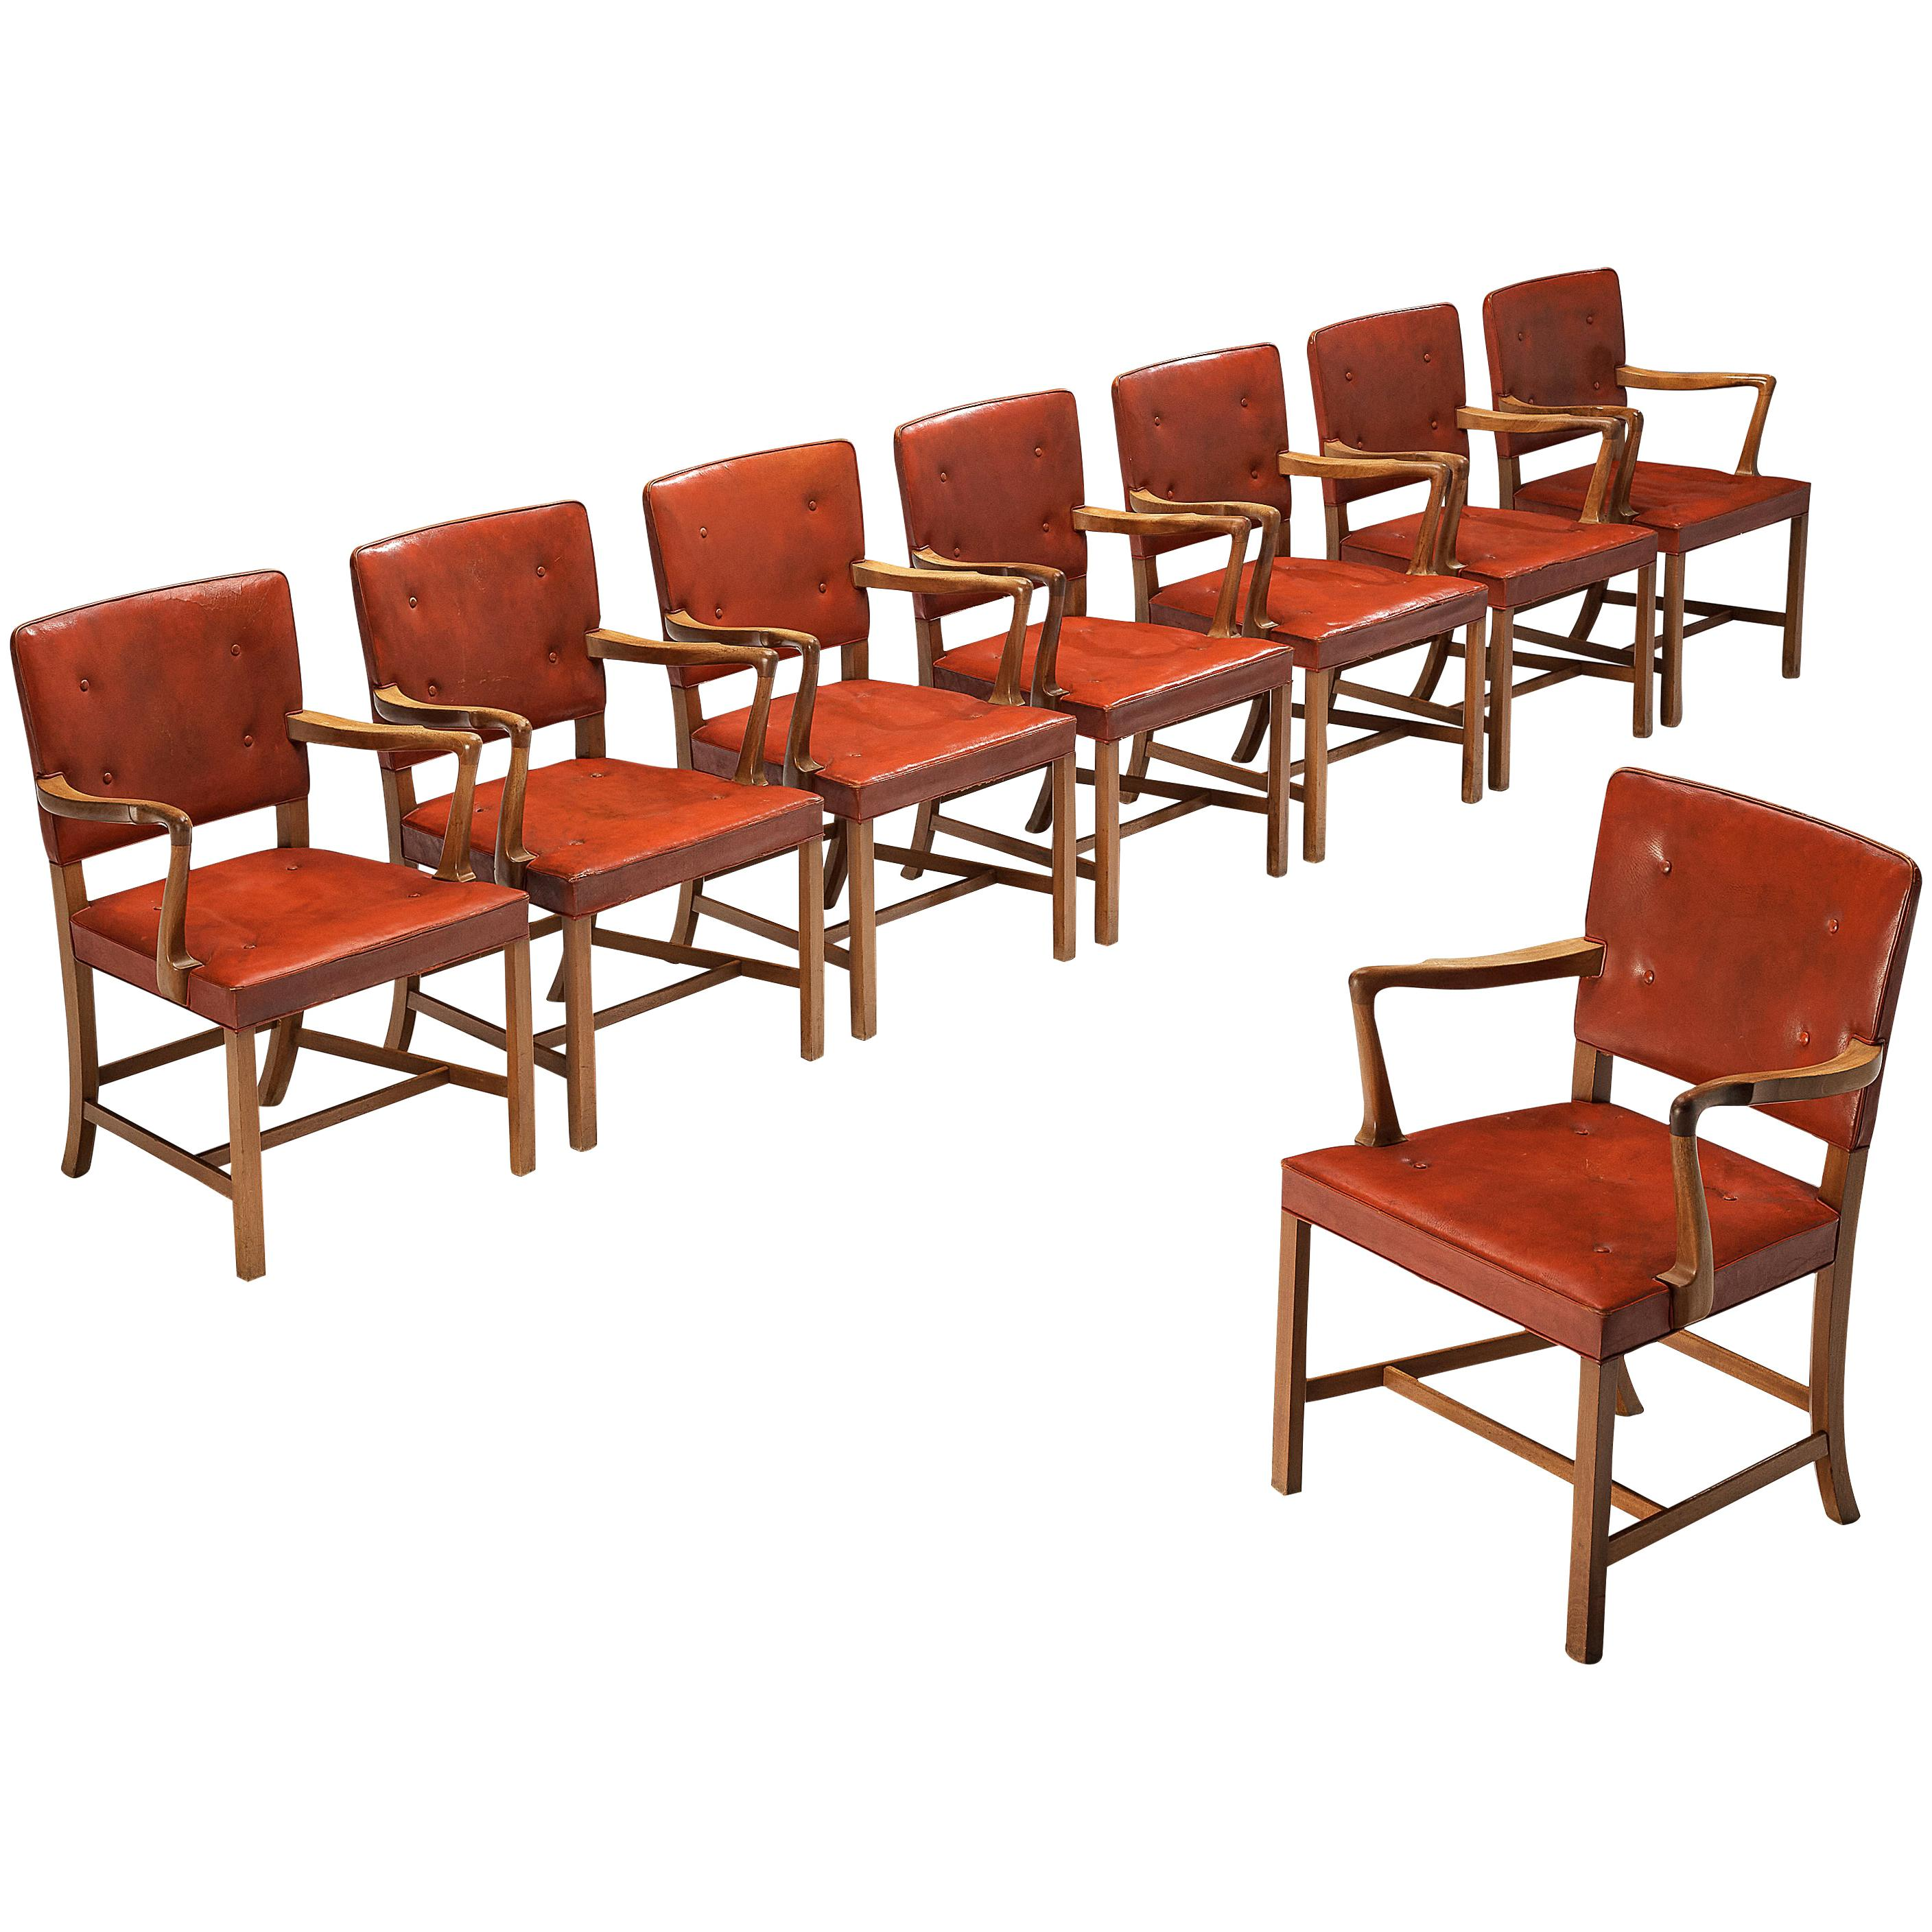 A.J. Iversen Dining Room Chairs